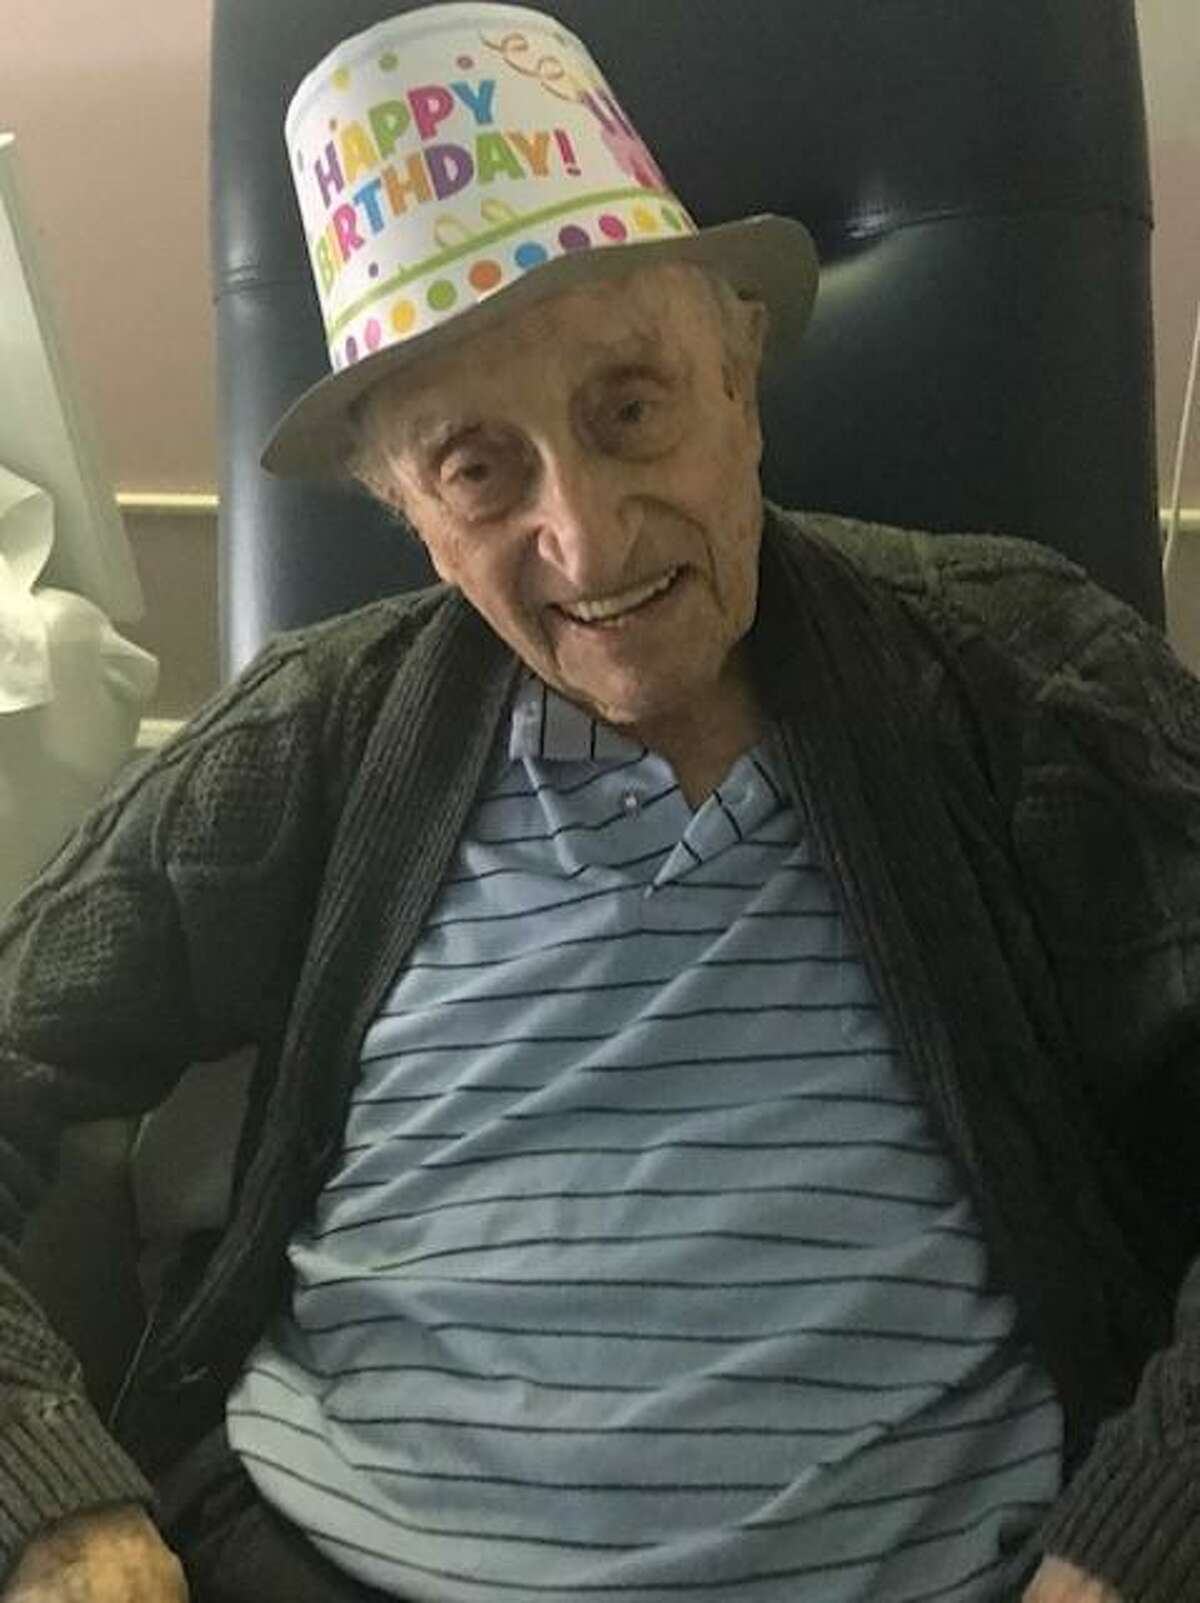 Angelo DeCaro, a resident of the Carolton long-term care facility in Fairfield, is turning 105-years old on Sunday. The longtime New Jersey resident recently beat COVID-19.